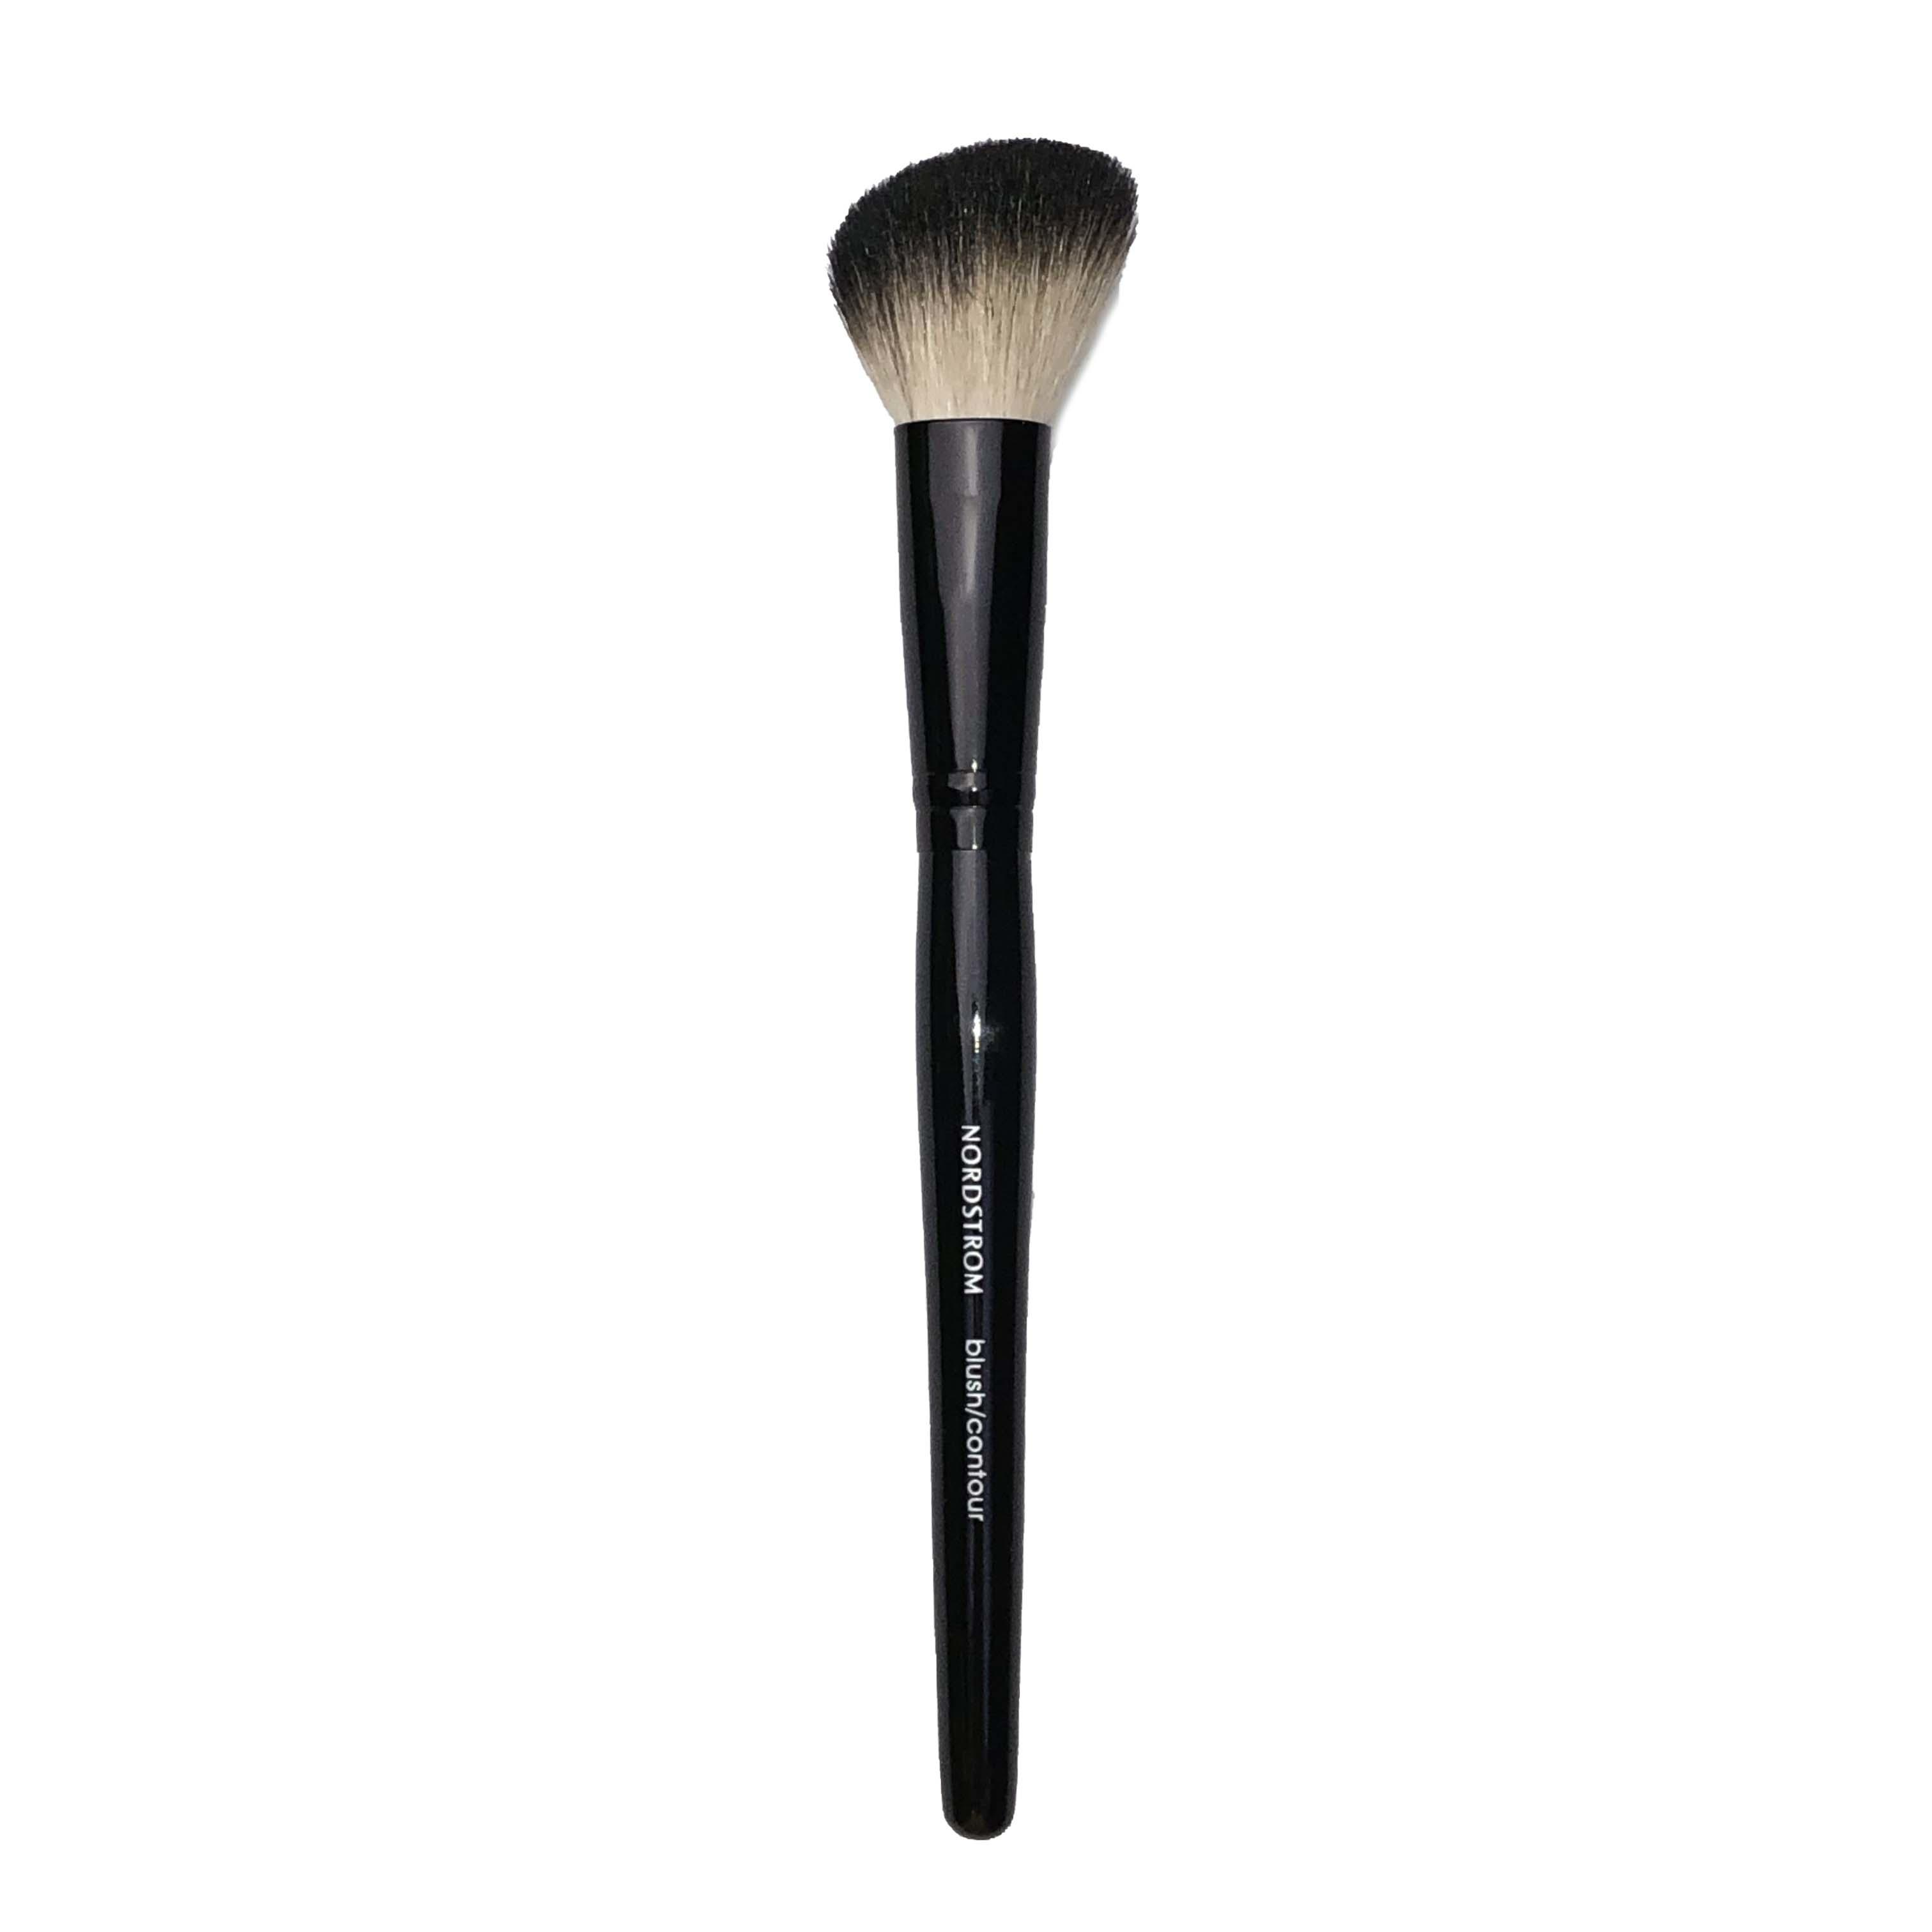 Nordstrom Blush Contour Face Brush Black